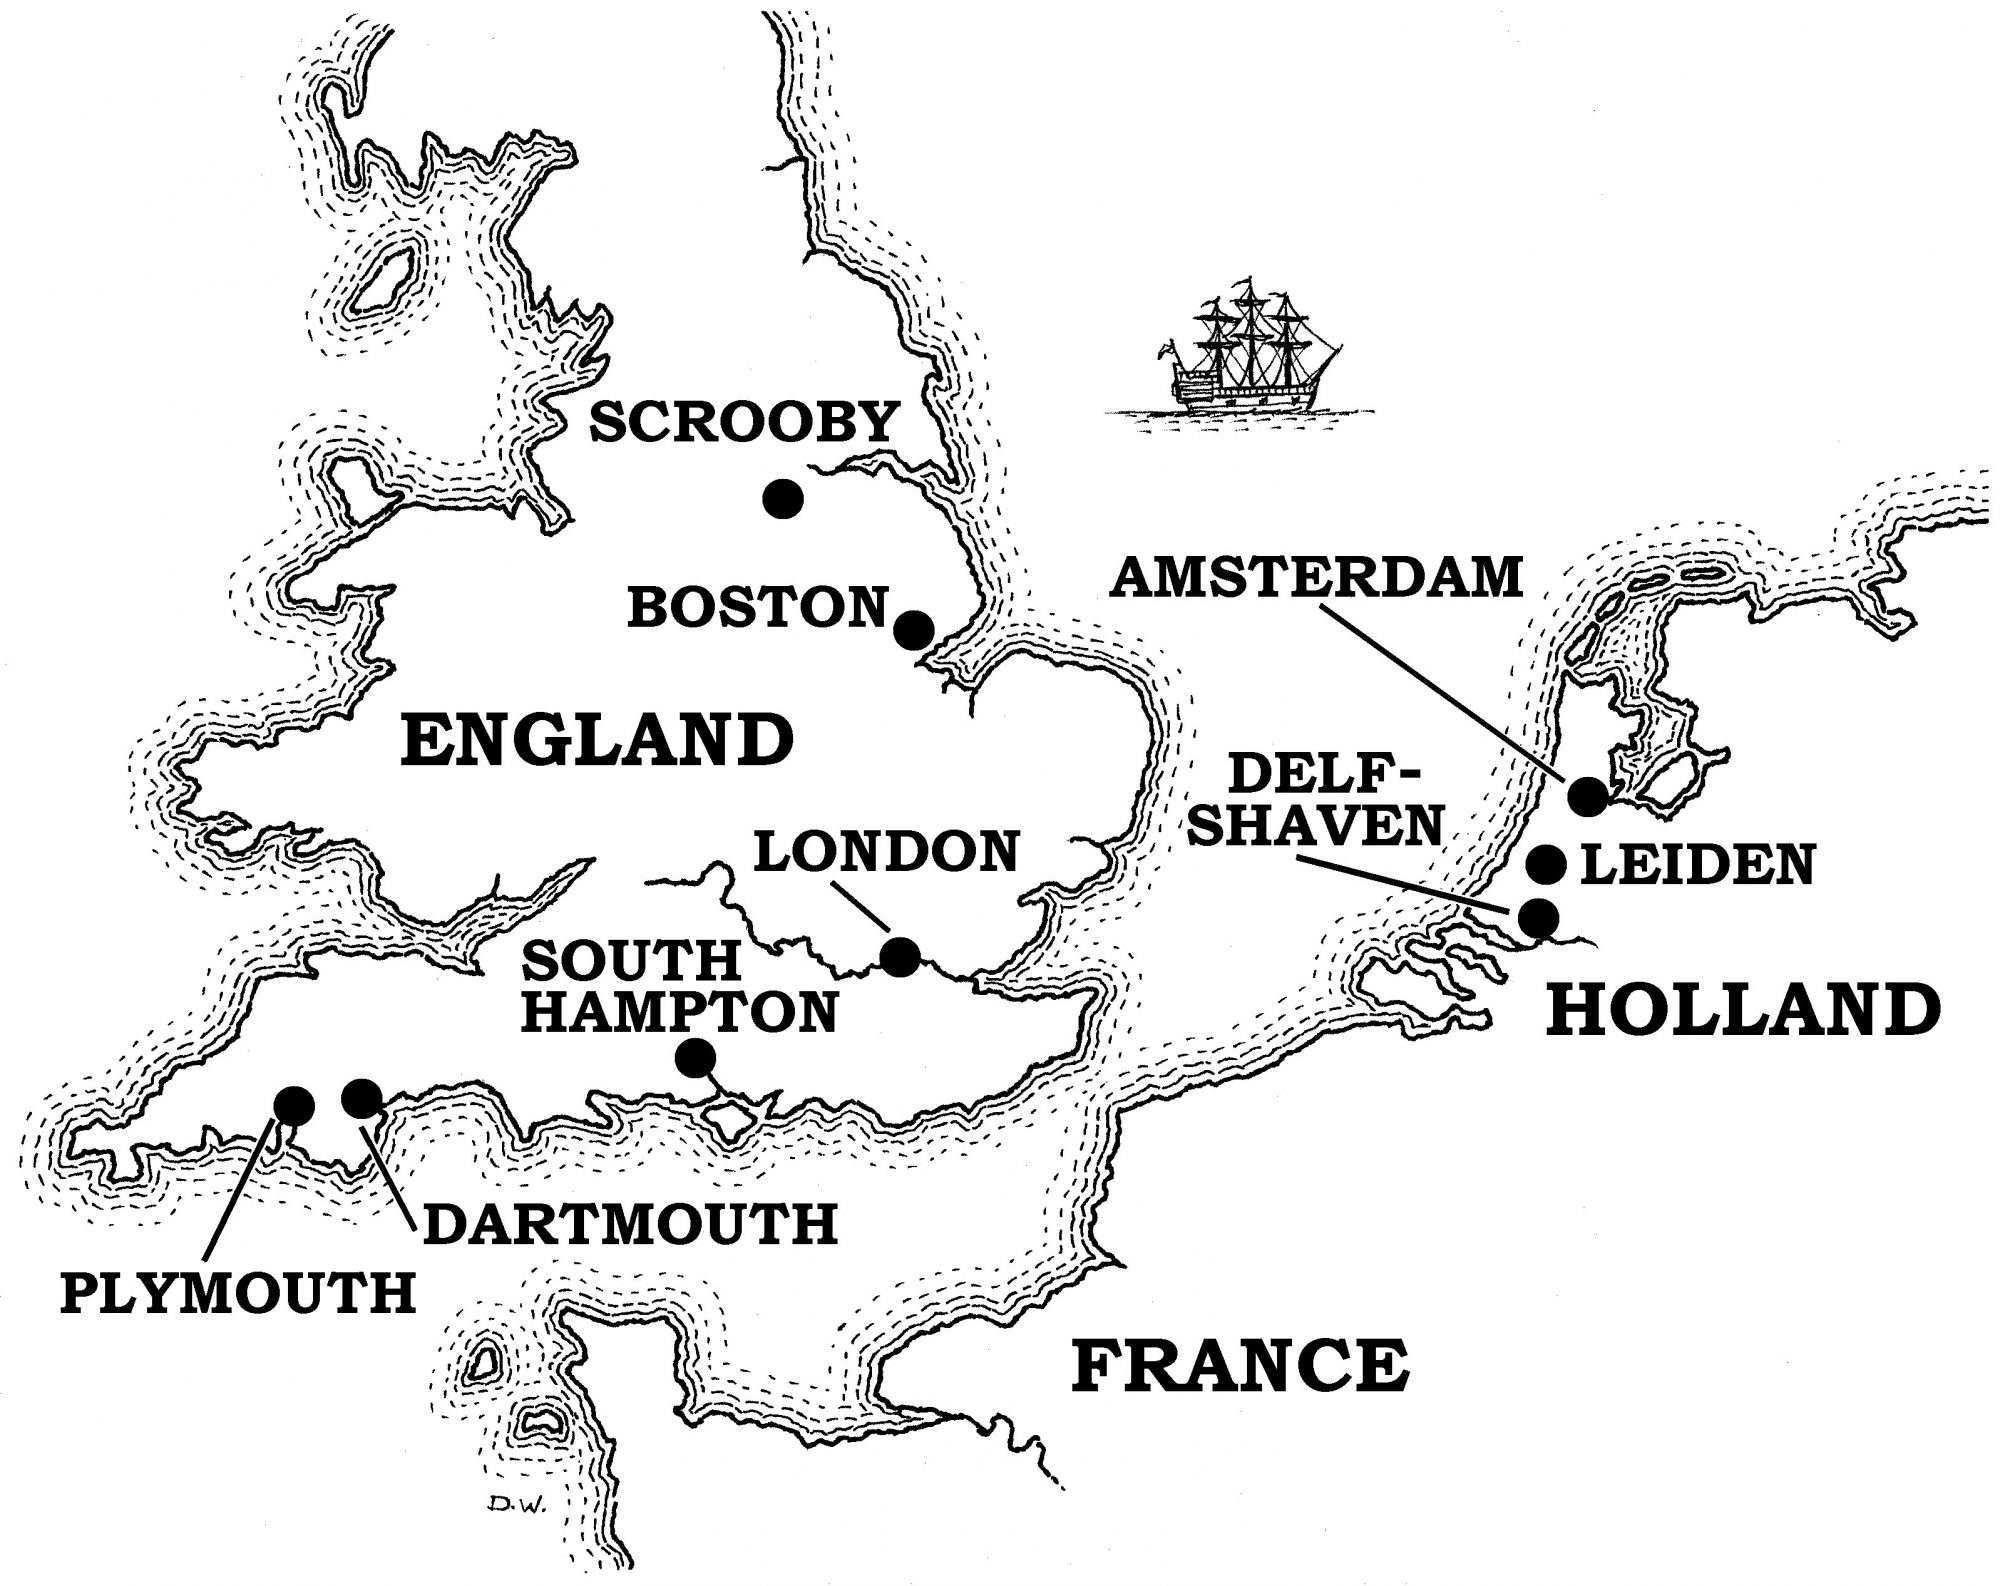 Map of the sea between England and Holland, where the Pilgrims once emigrated.